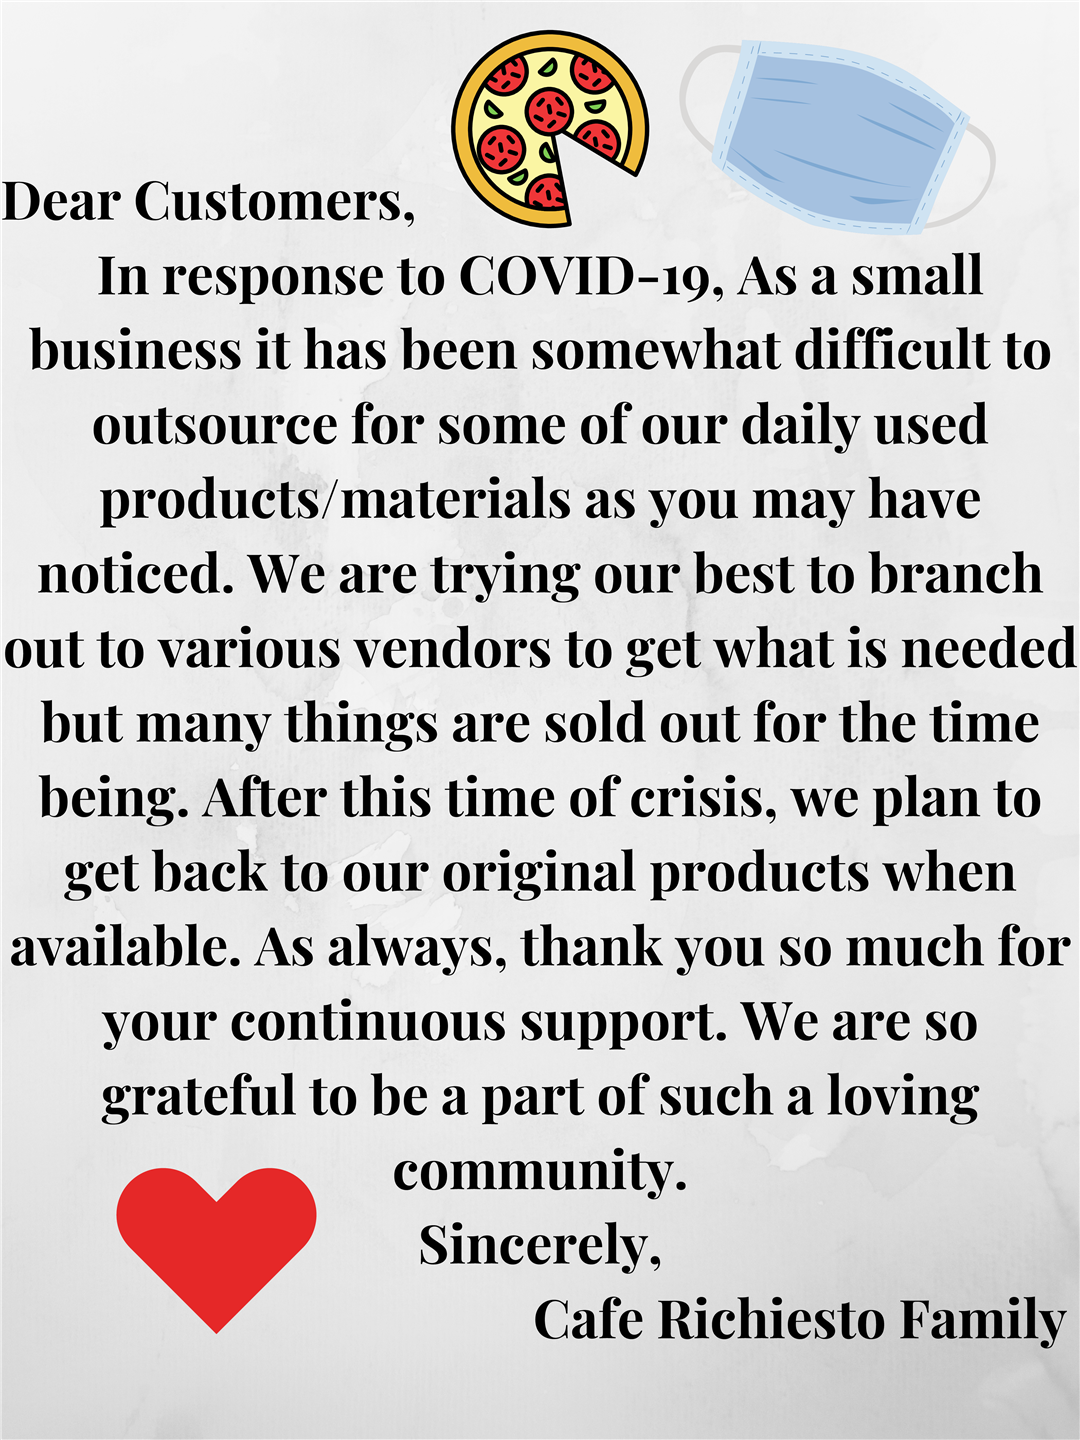 dear customers, in response to covid-19. as a small business it has been somewhat difficult to outsource for some of our daily used products/materials as you may have noticed. we are trying our best to branch out to various vendors to get what is needed but many things are sold out for the time being. after this time of crisis, we plan to get back to our original products when available. as always, thank you so much for your continuous support. we are so grateful to be a part of such a loving community. sincerely, cafe richiesto family